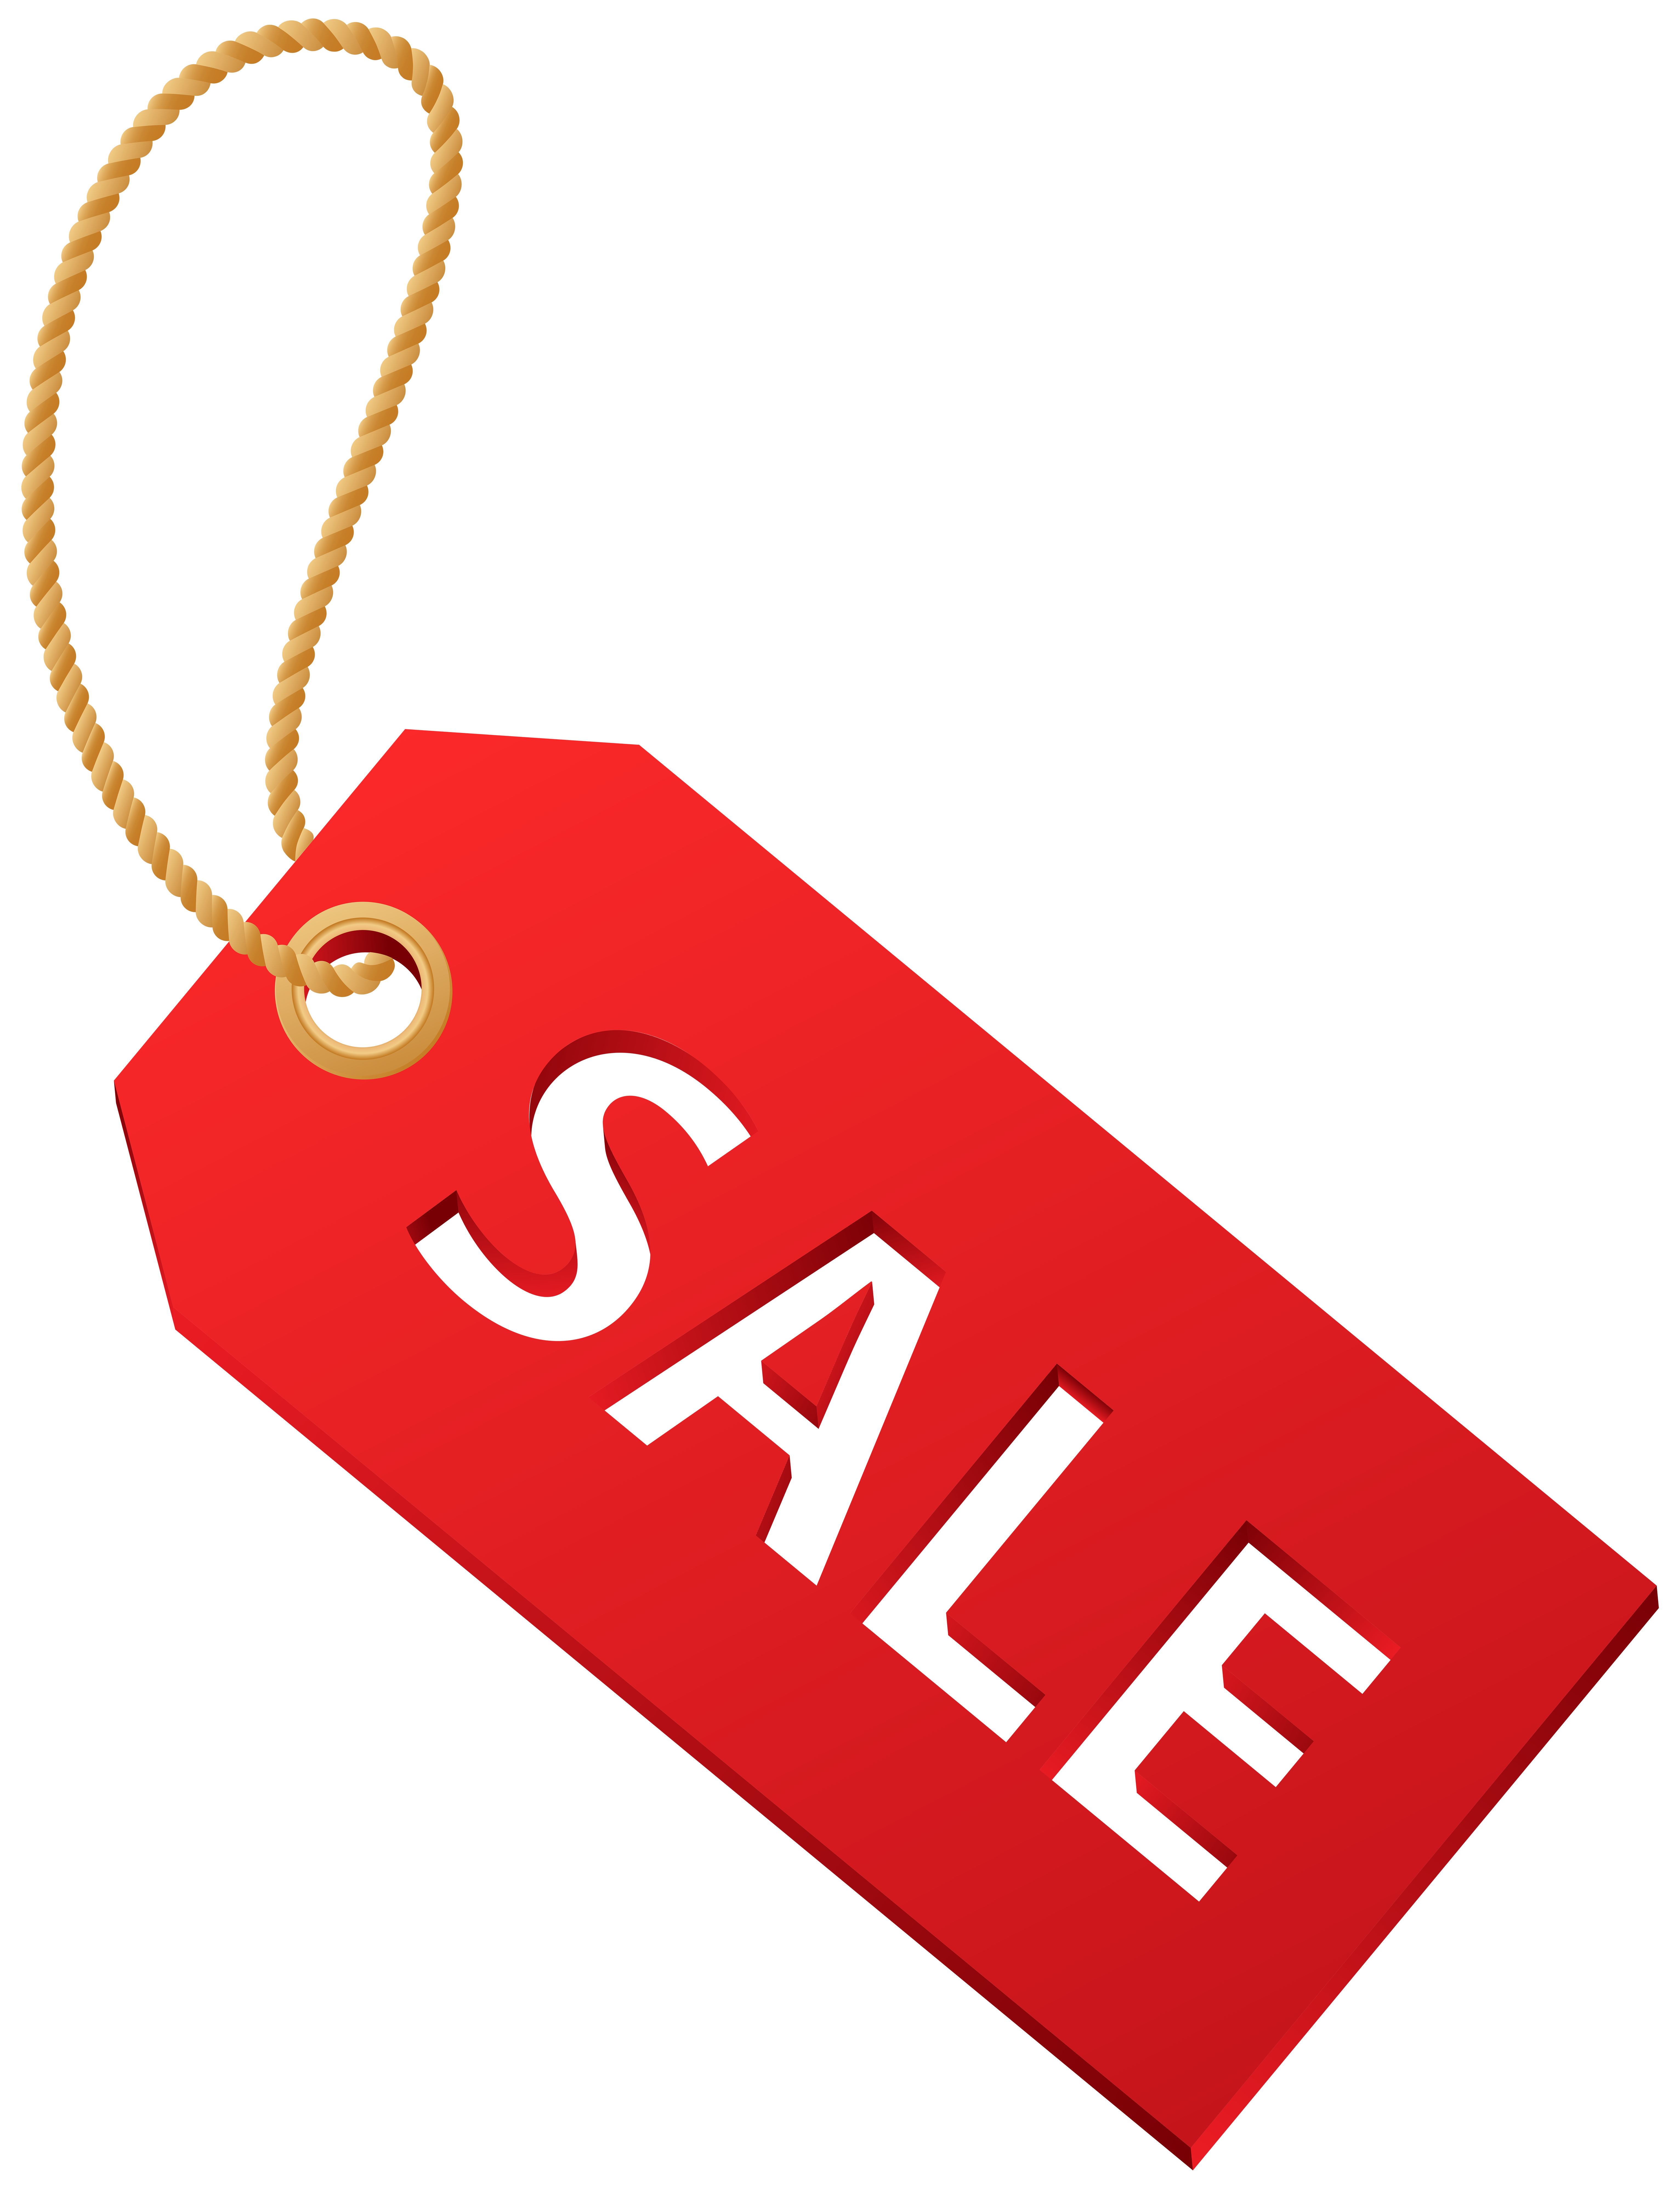 Red tag sale png. Transparent images pngio picture